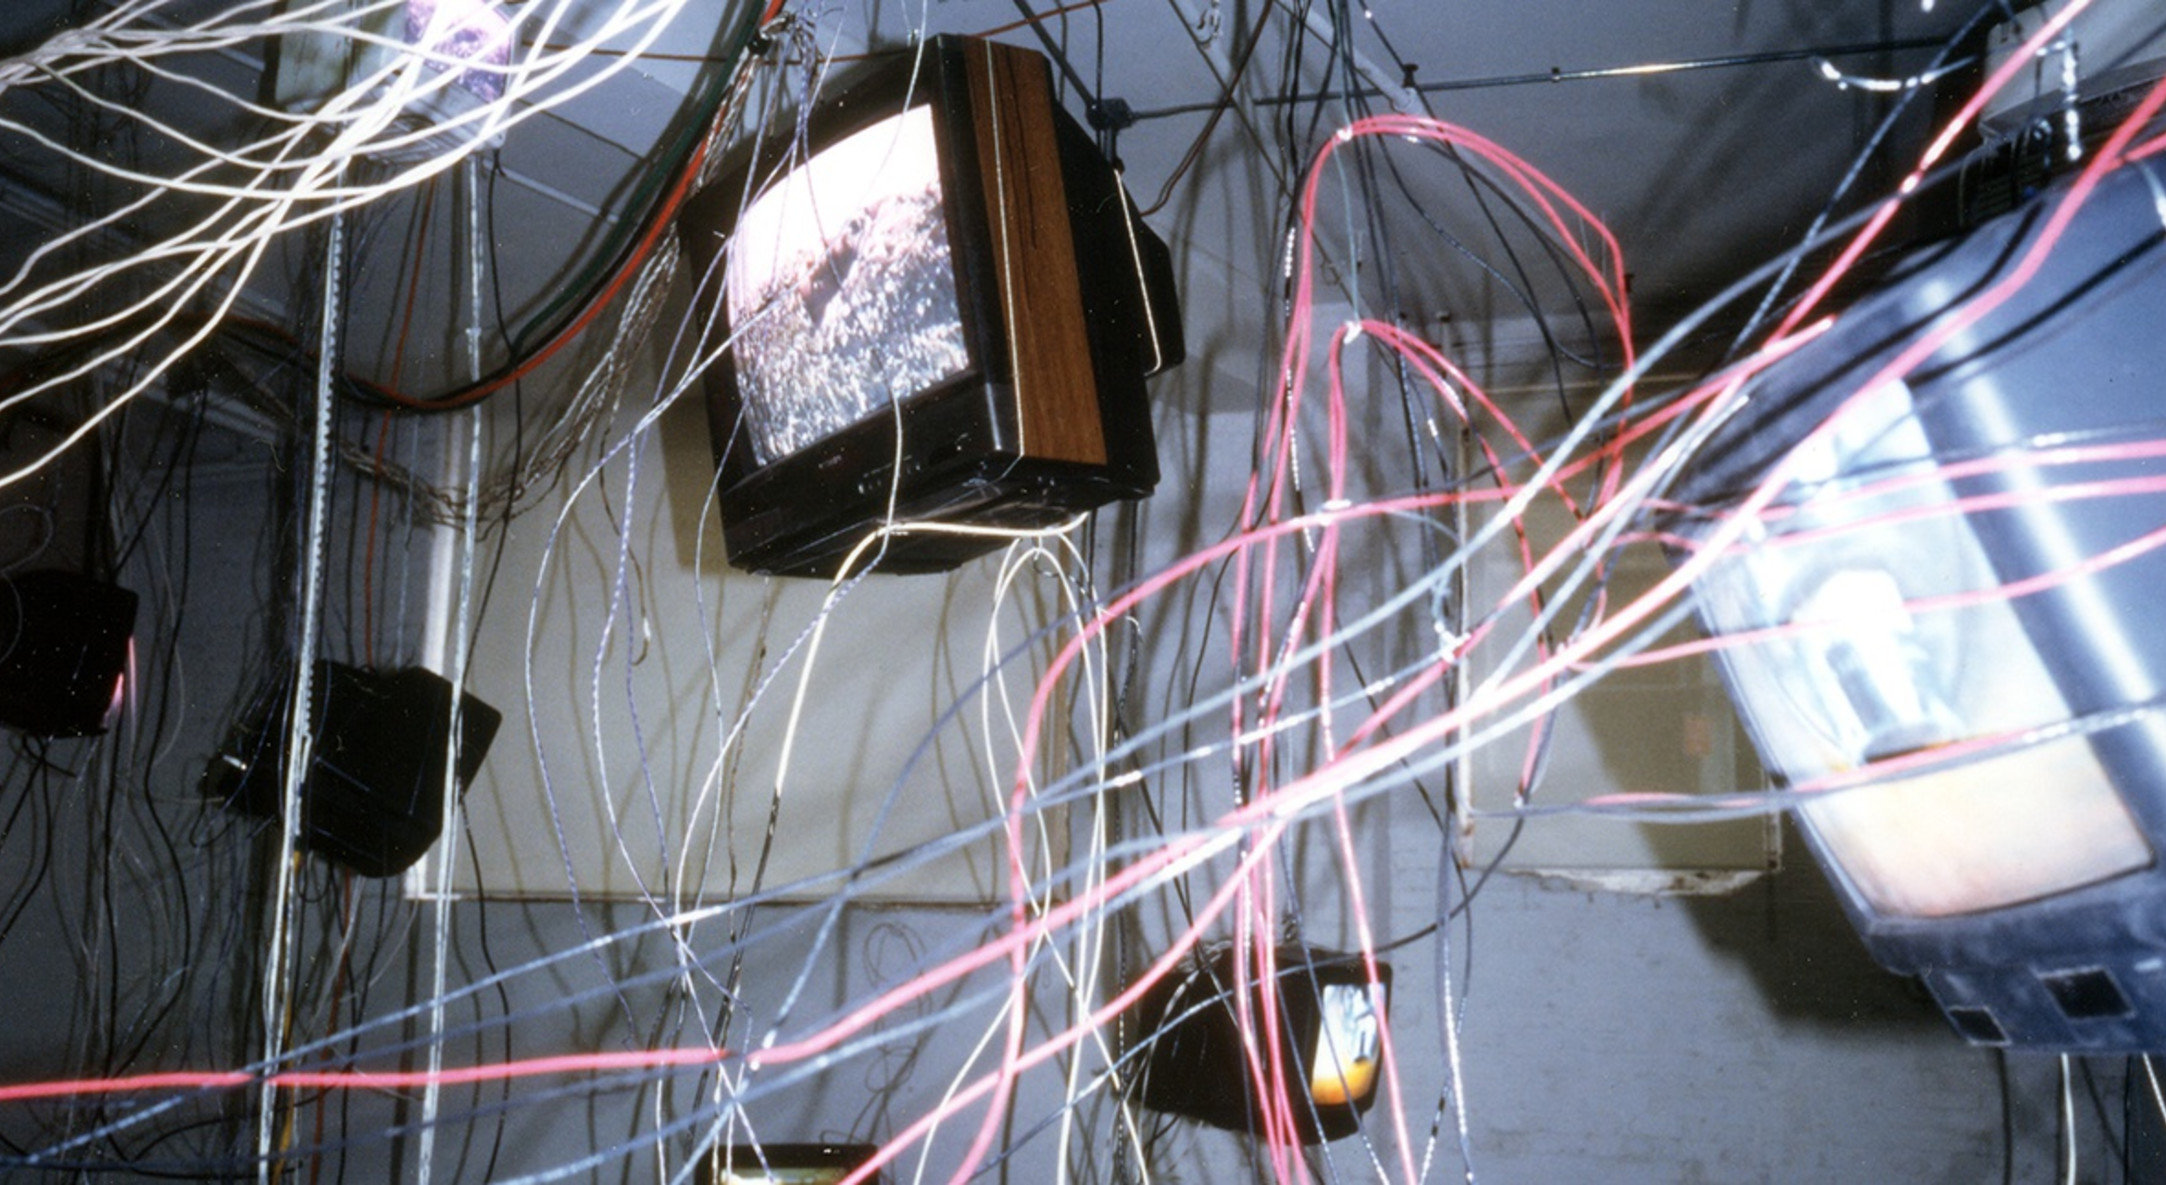 Carolee Schneemann, More Wrong Things, 2000, multichannel video installation with suspended cable environment. Photo: Musee Rochechouart, France, 2013